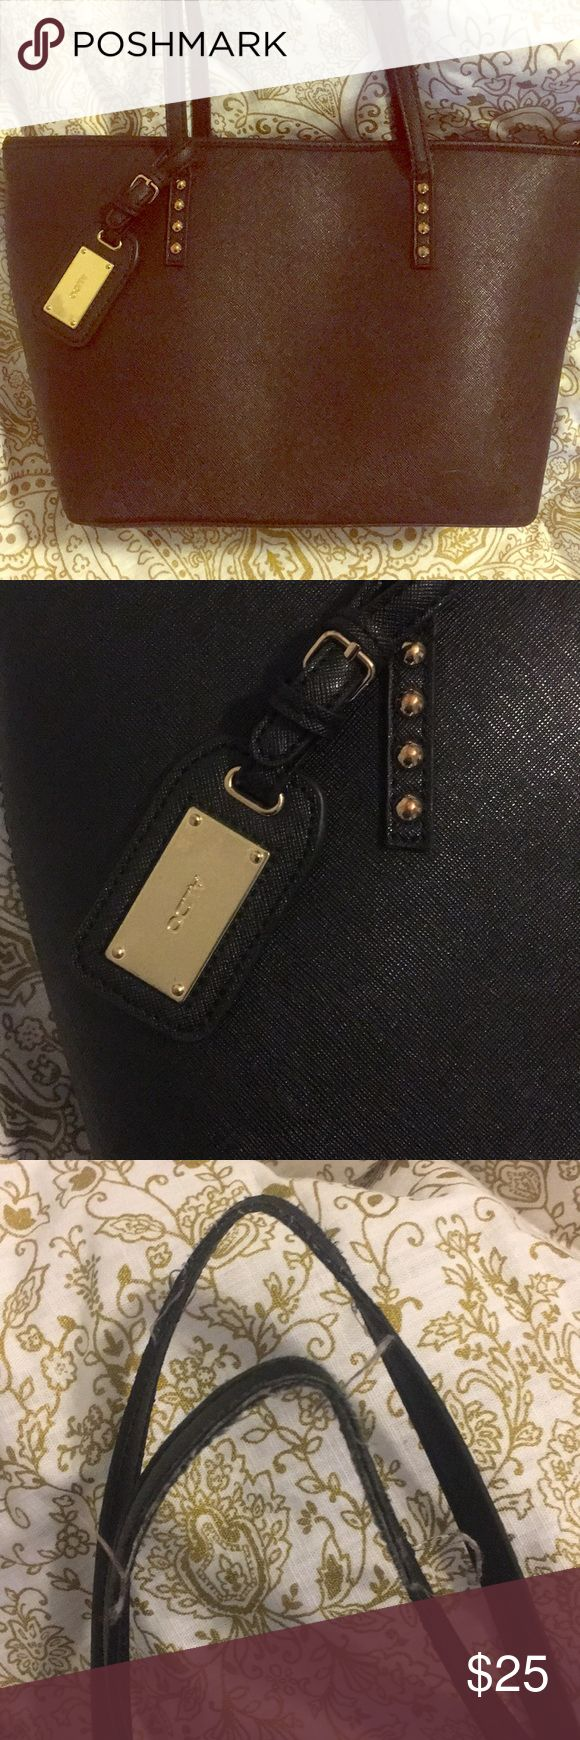 Black aldo tote purse Black faux saffiano leather tote purse from Aldo. Gently used for only a couple weeks.. the tote bag style just isn't for me. I am moving so make me an offer! Everything in my closet must go! Aldo Bags Totes